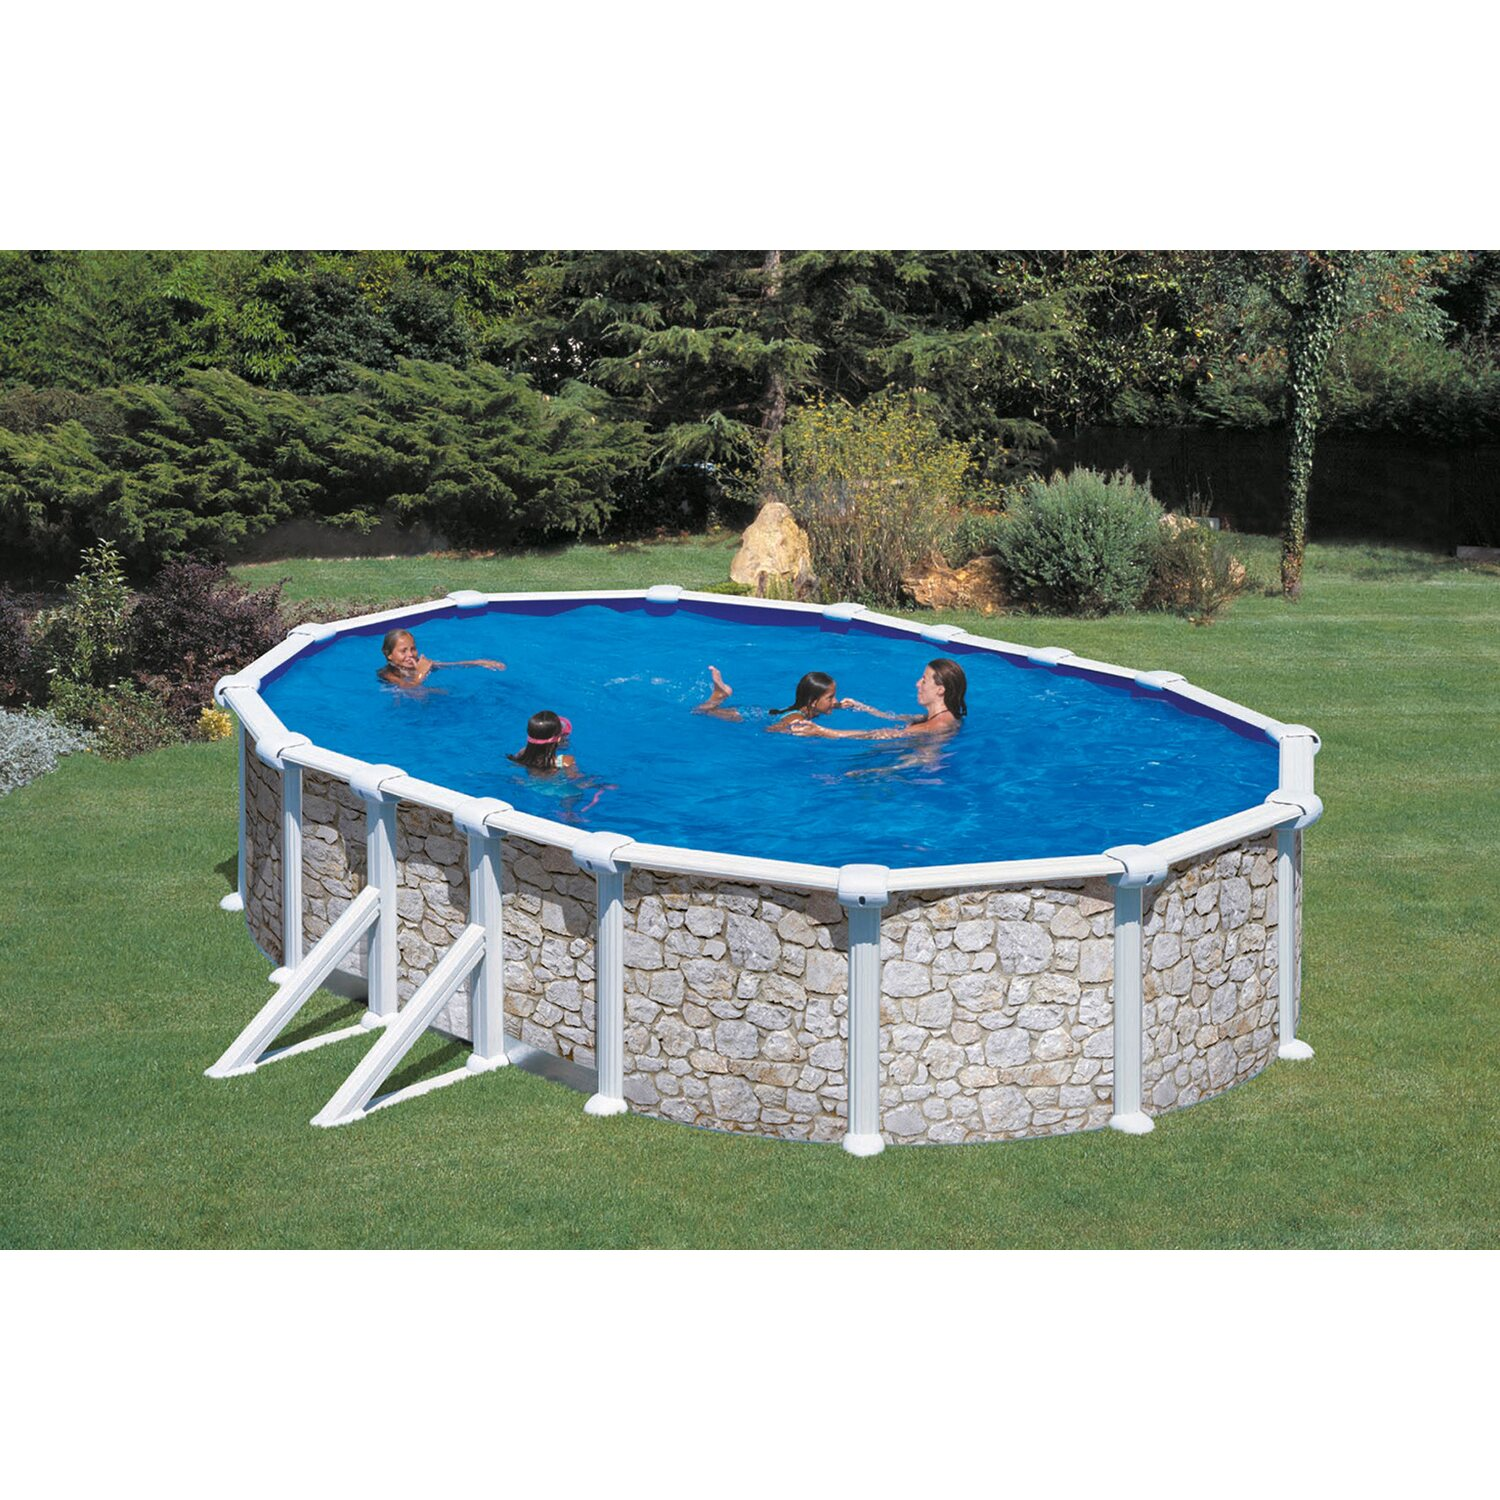 Summer fun stahlwand pool set valencia 500 cm x 300 cm x for Pool mit stahlwand